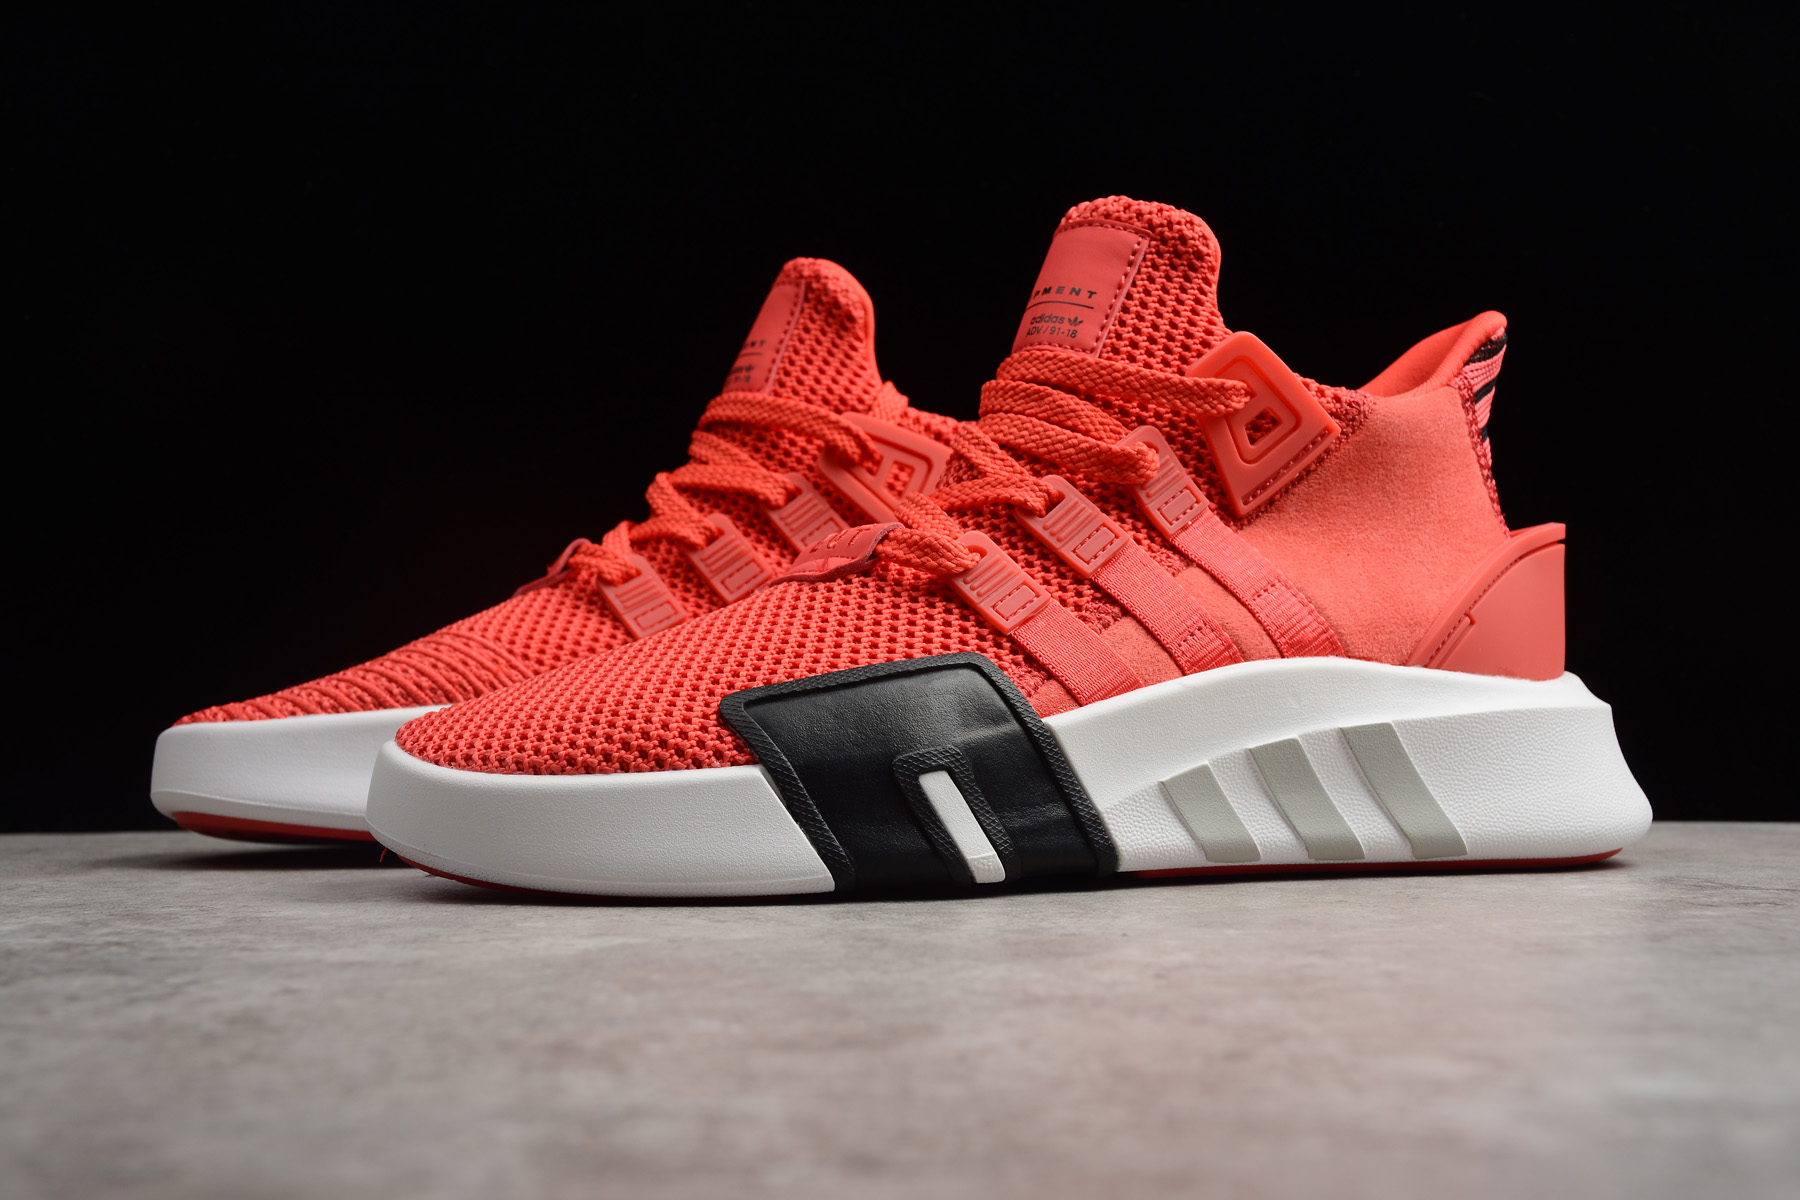 adidas EQT Bask ADV Real Coral/White-Black B22642 For Sale